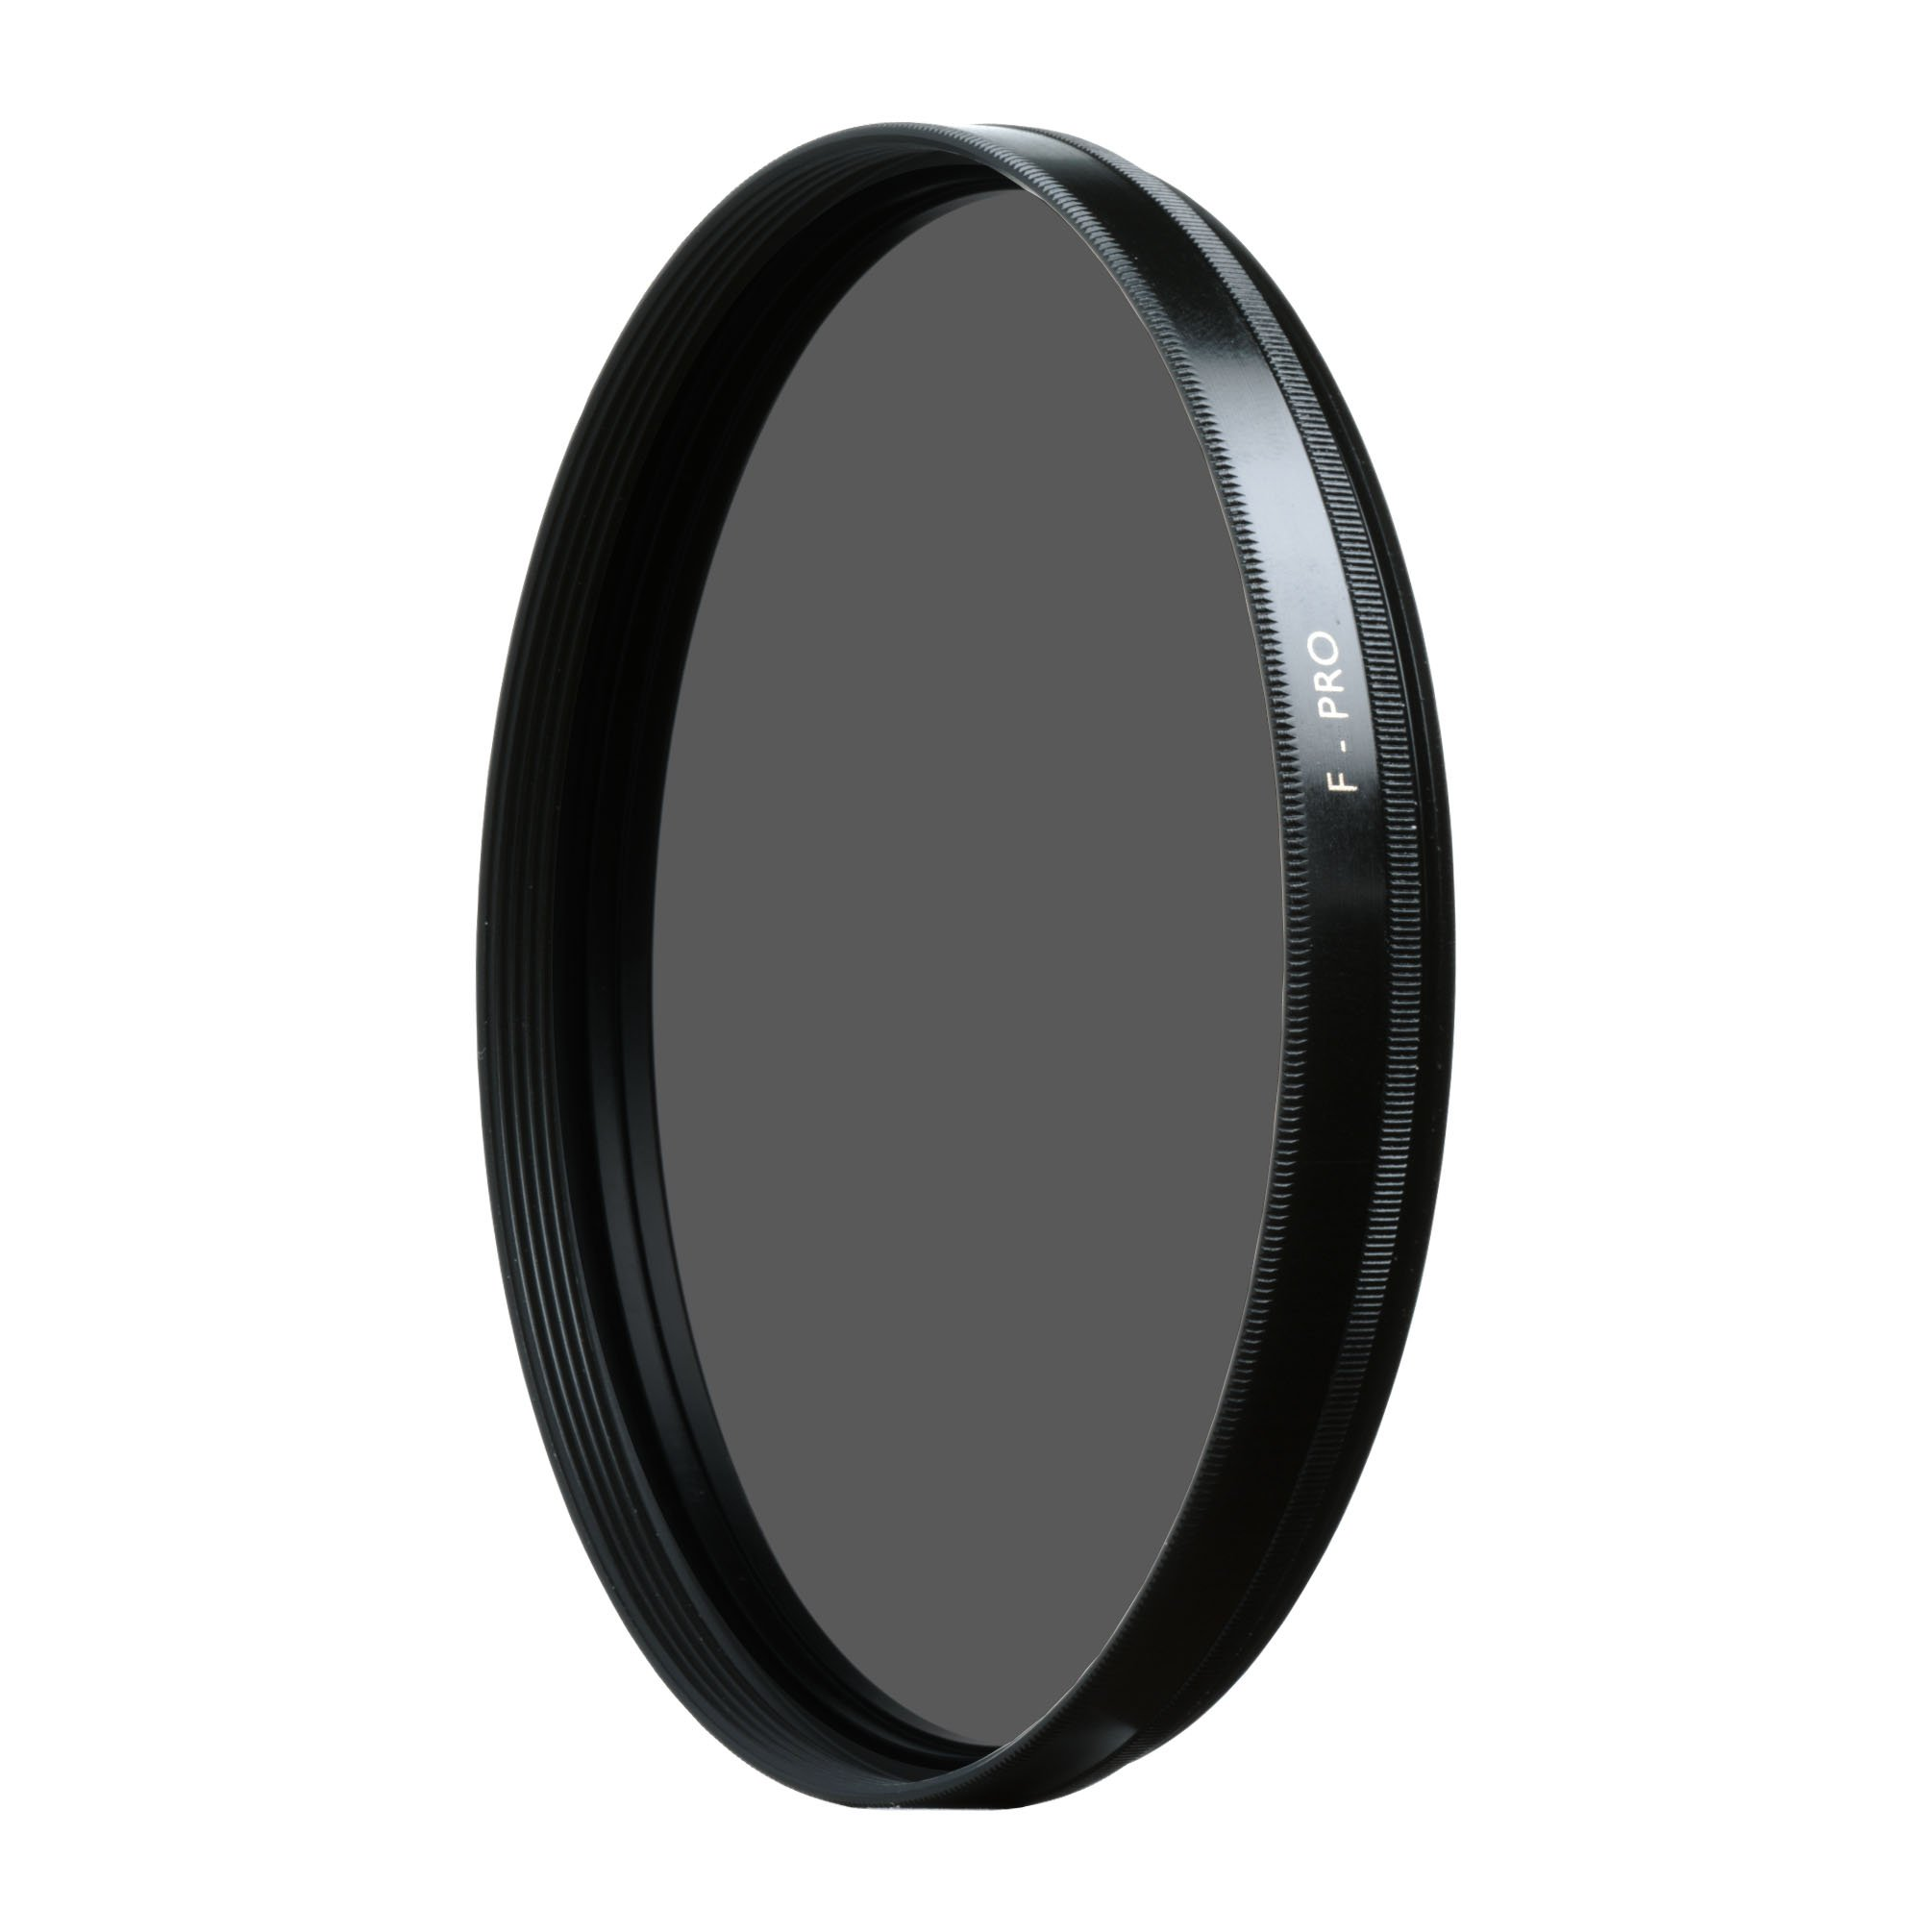 B+W 72mm Circular Polarizer by B + W